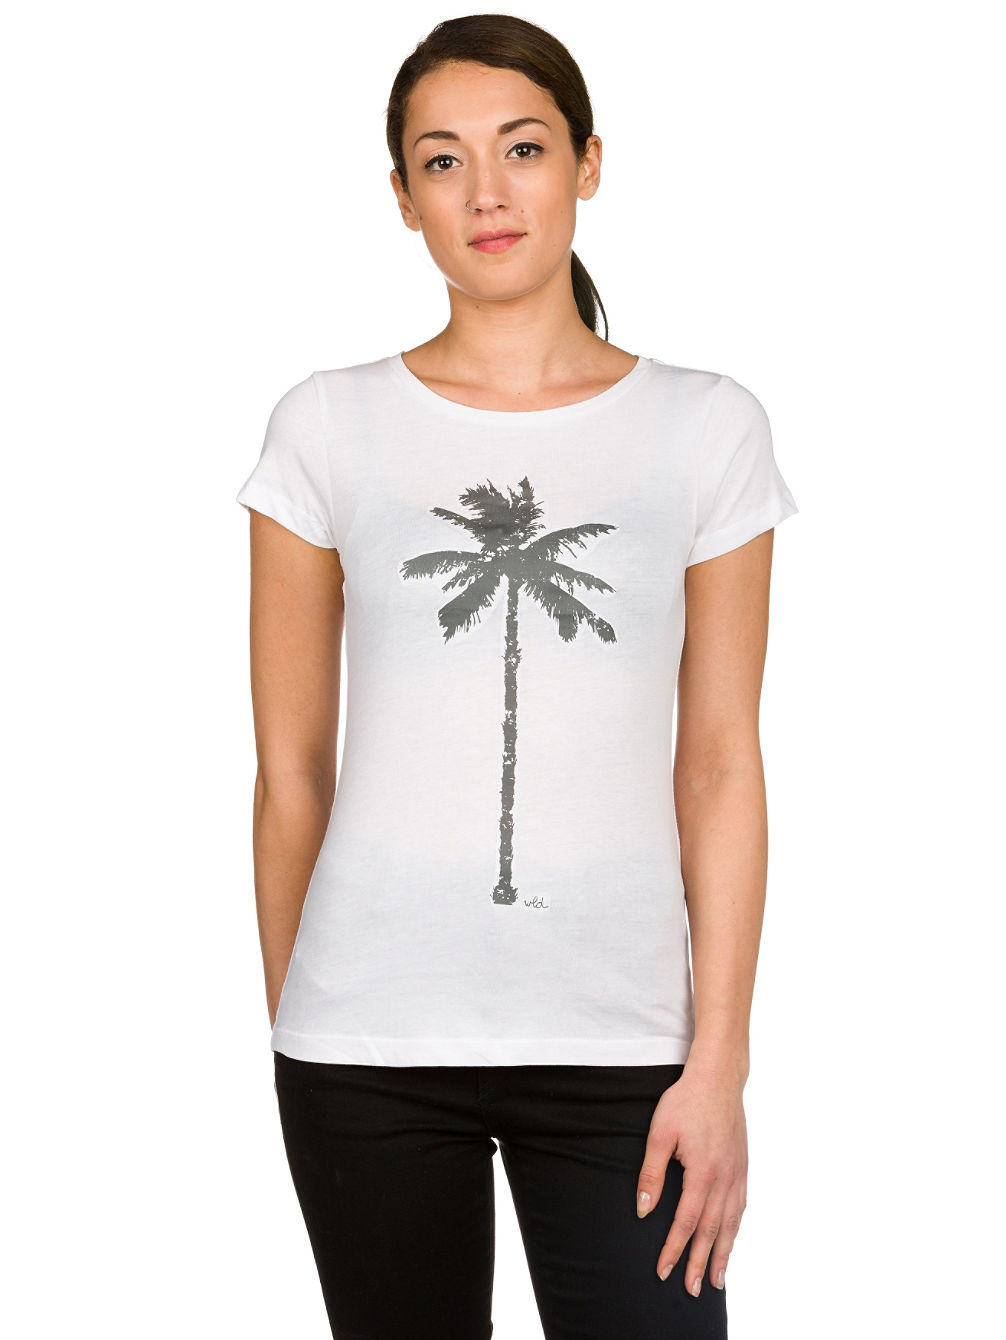 The Palm T-Shirt